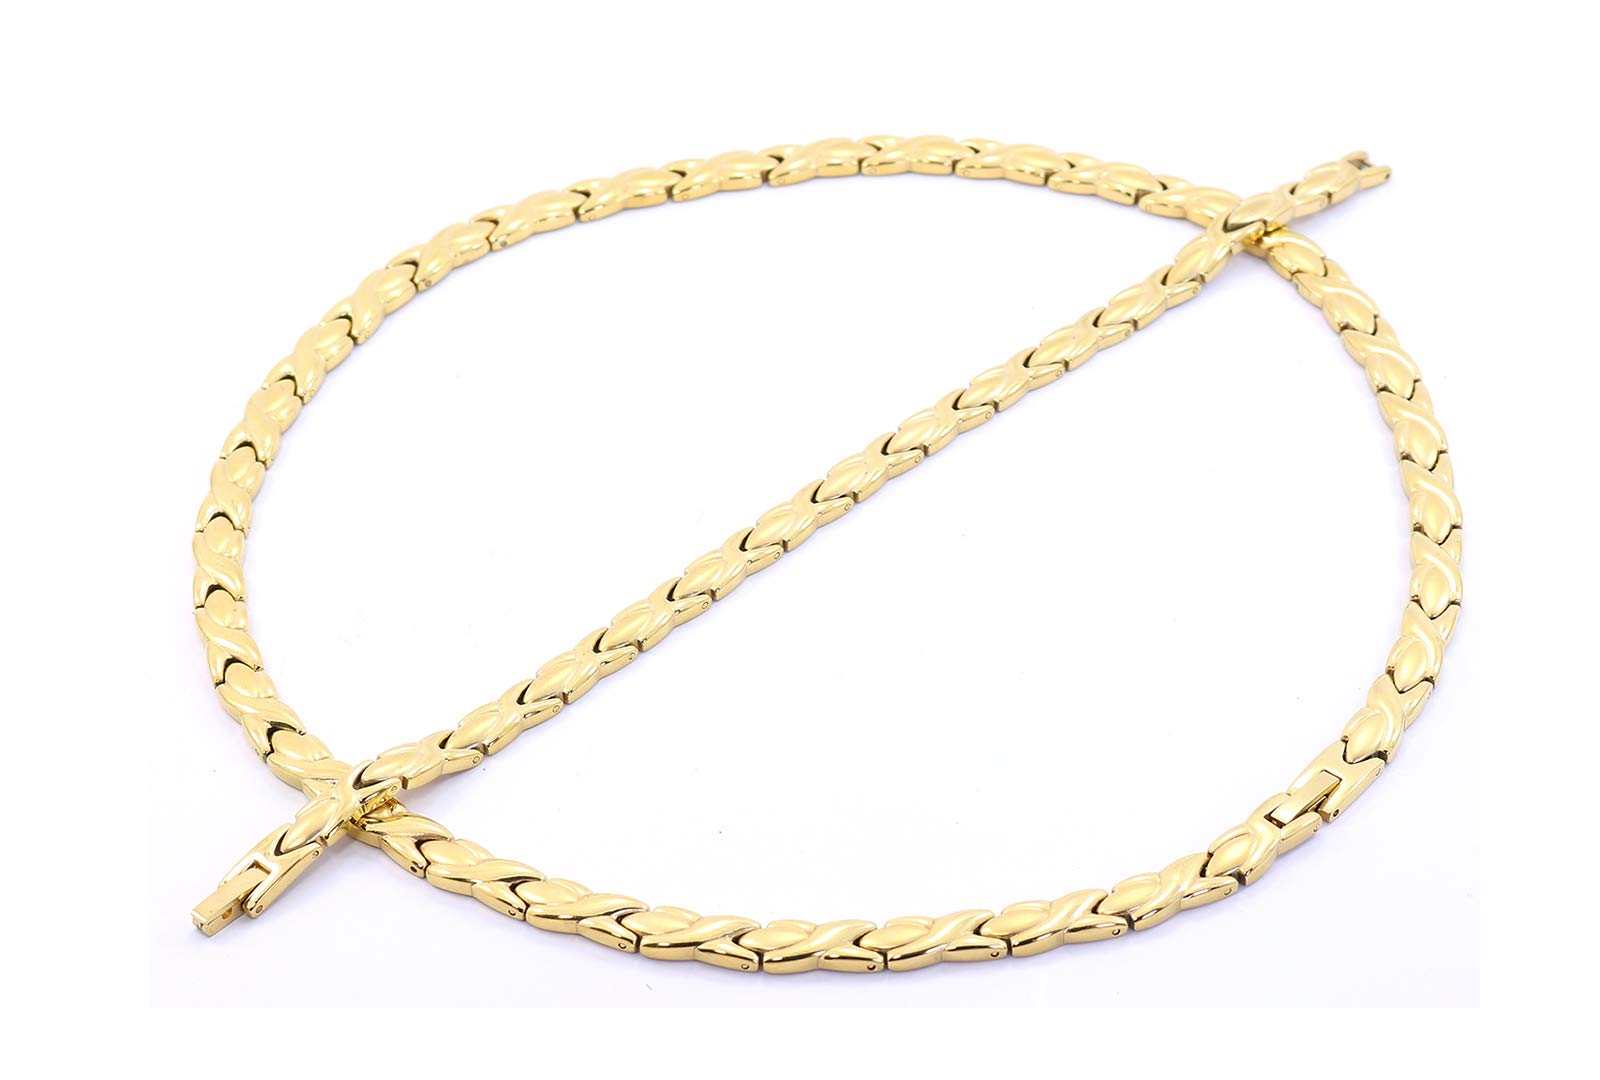 Hugs and Kisses Stainless Steel Stampato Necklace and Bracelet Set Gold Tone 20'' Length